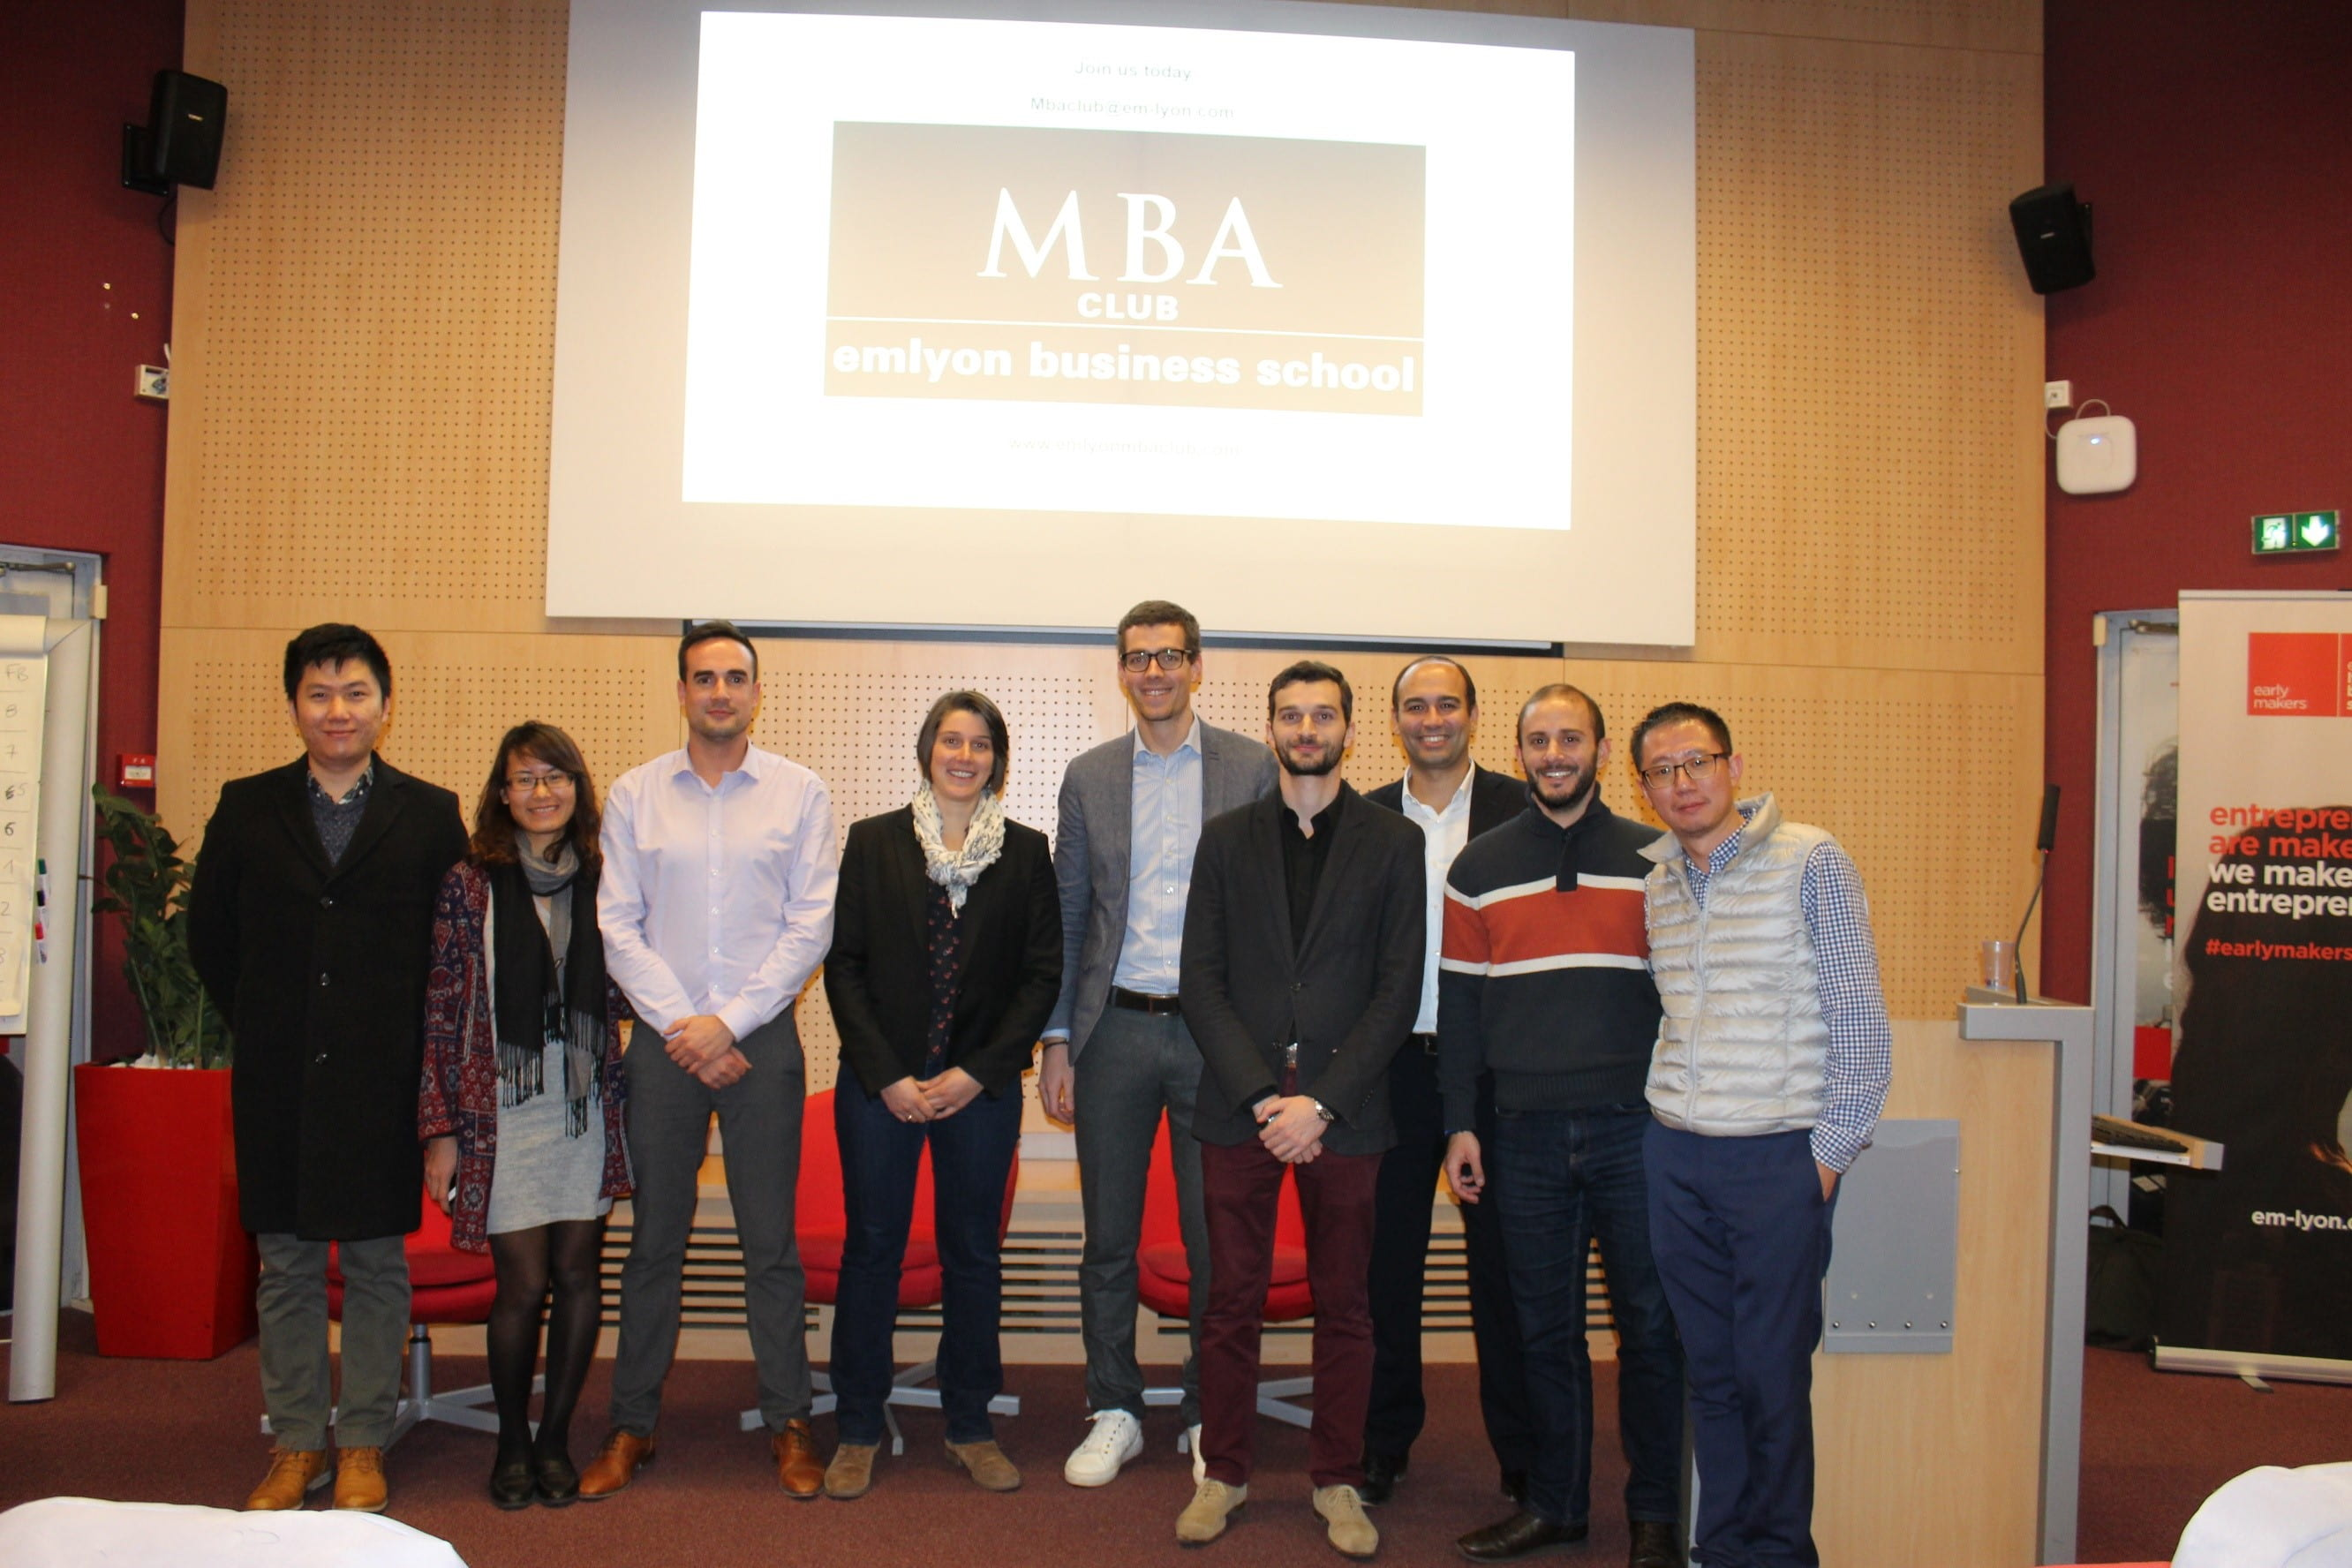 MBA club launch – the beginning of an association for all MBA candidates at emlyon business school